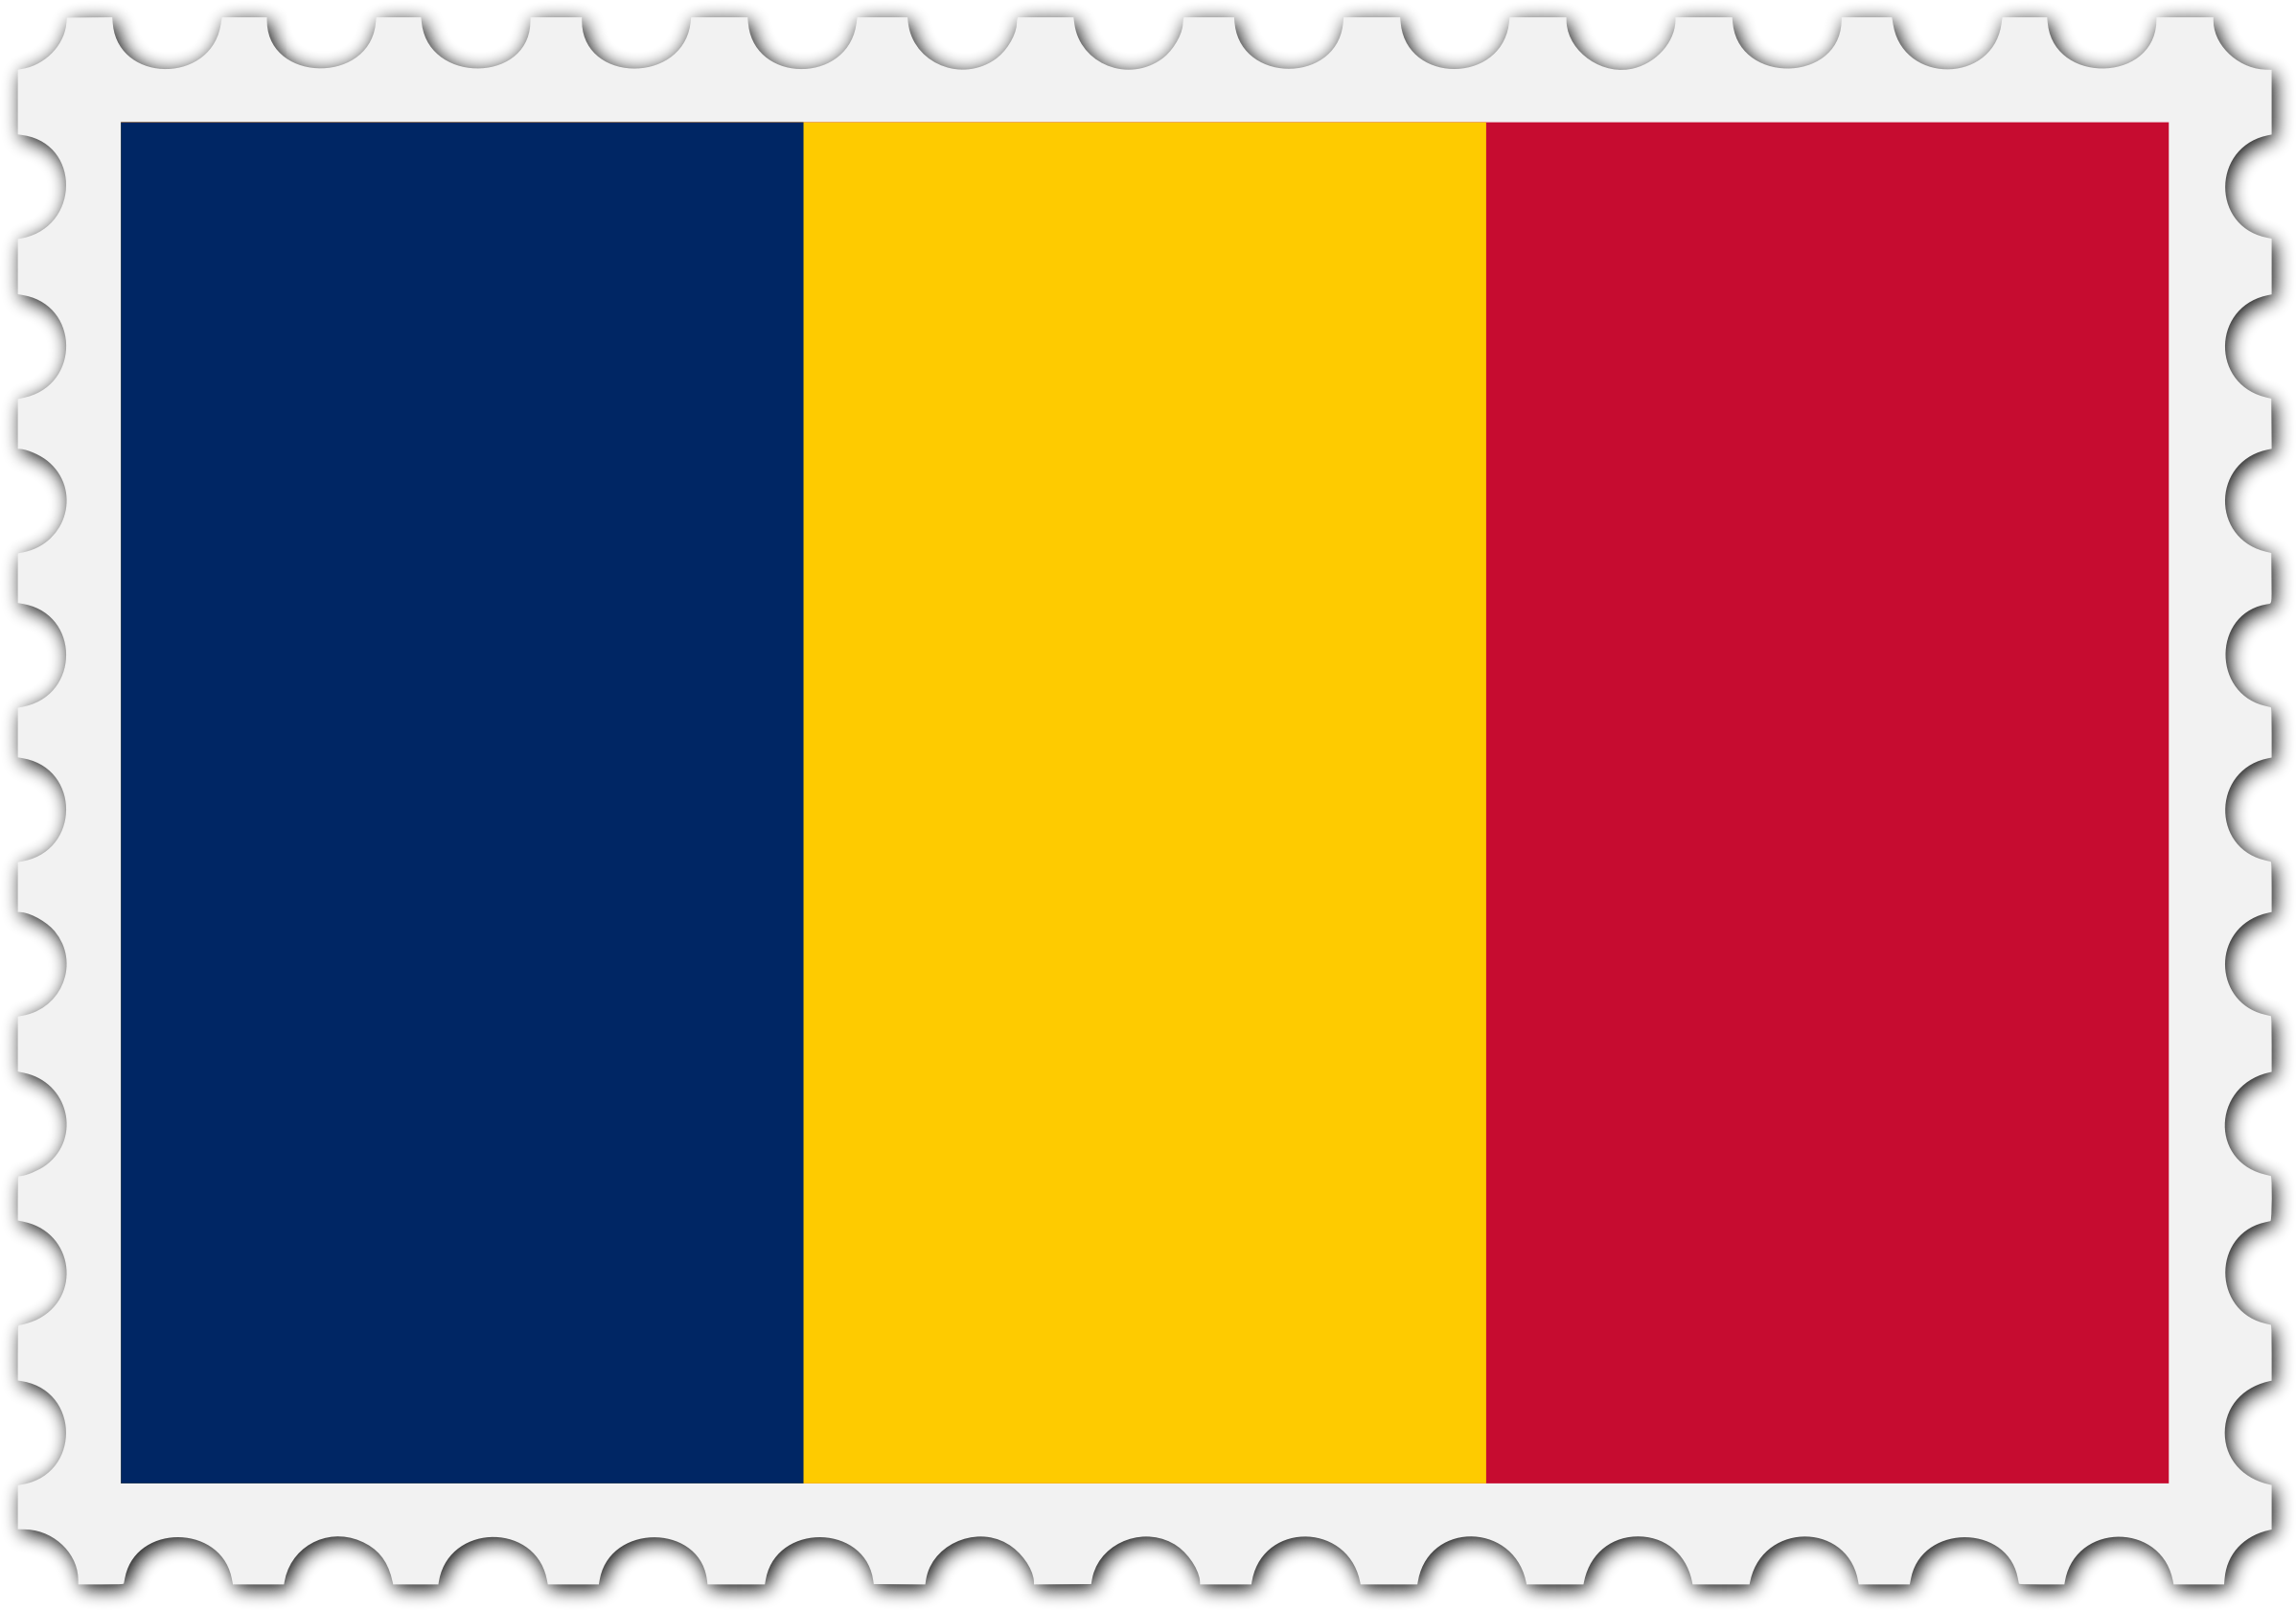 Chad flag stamp by Firkin